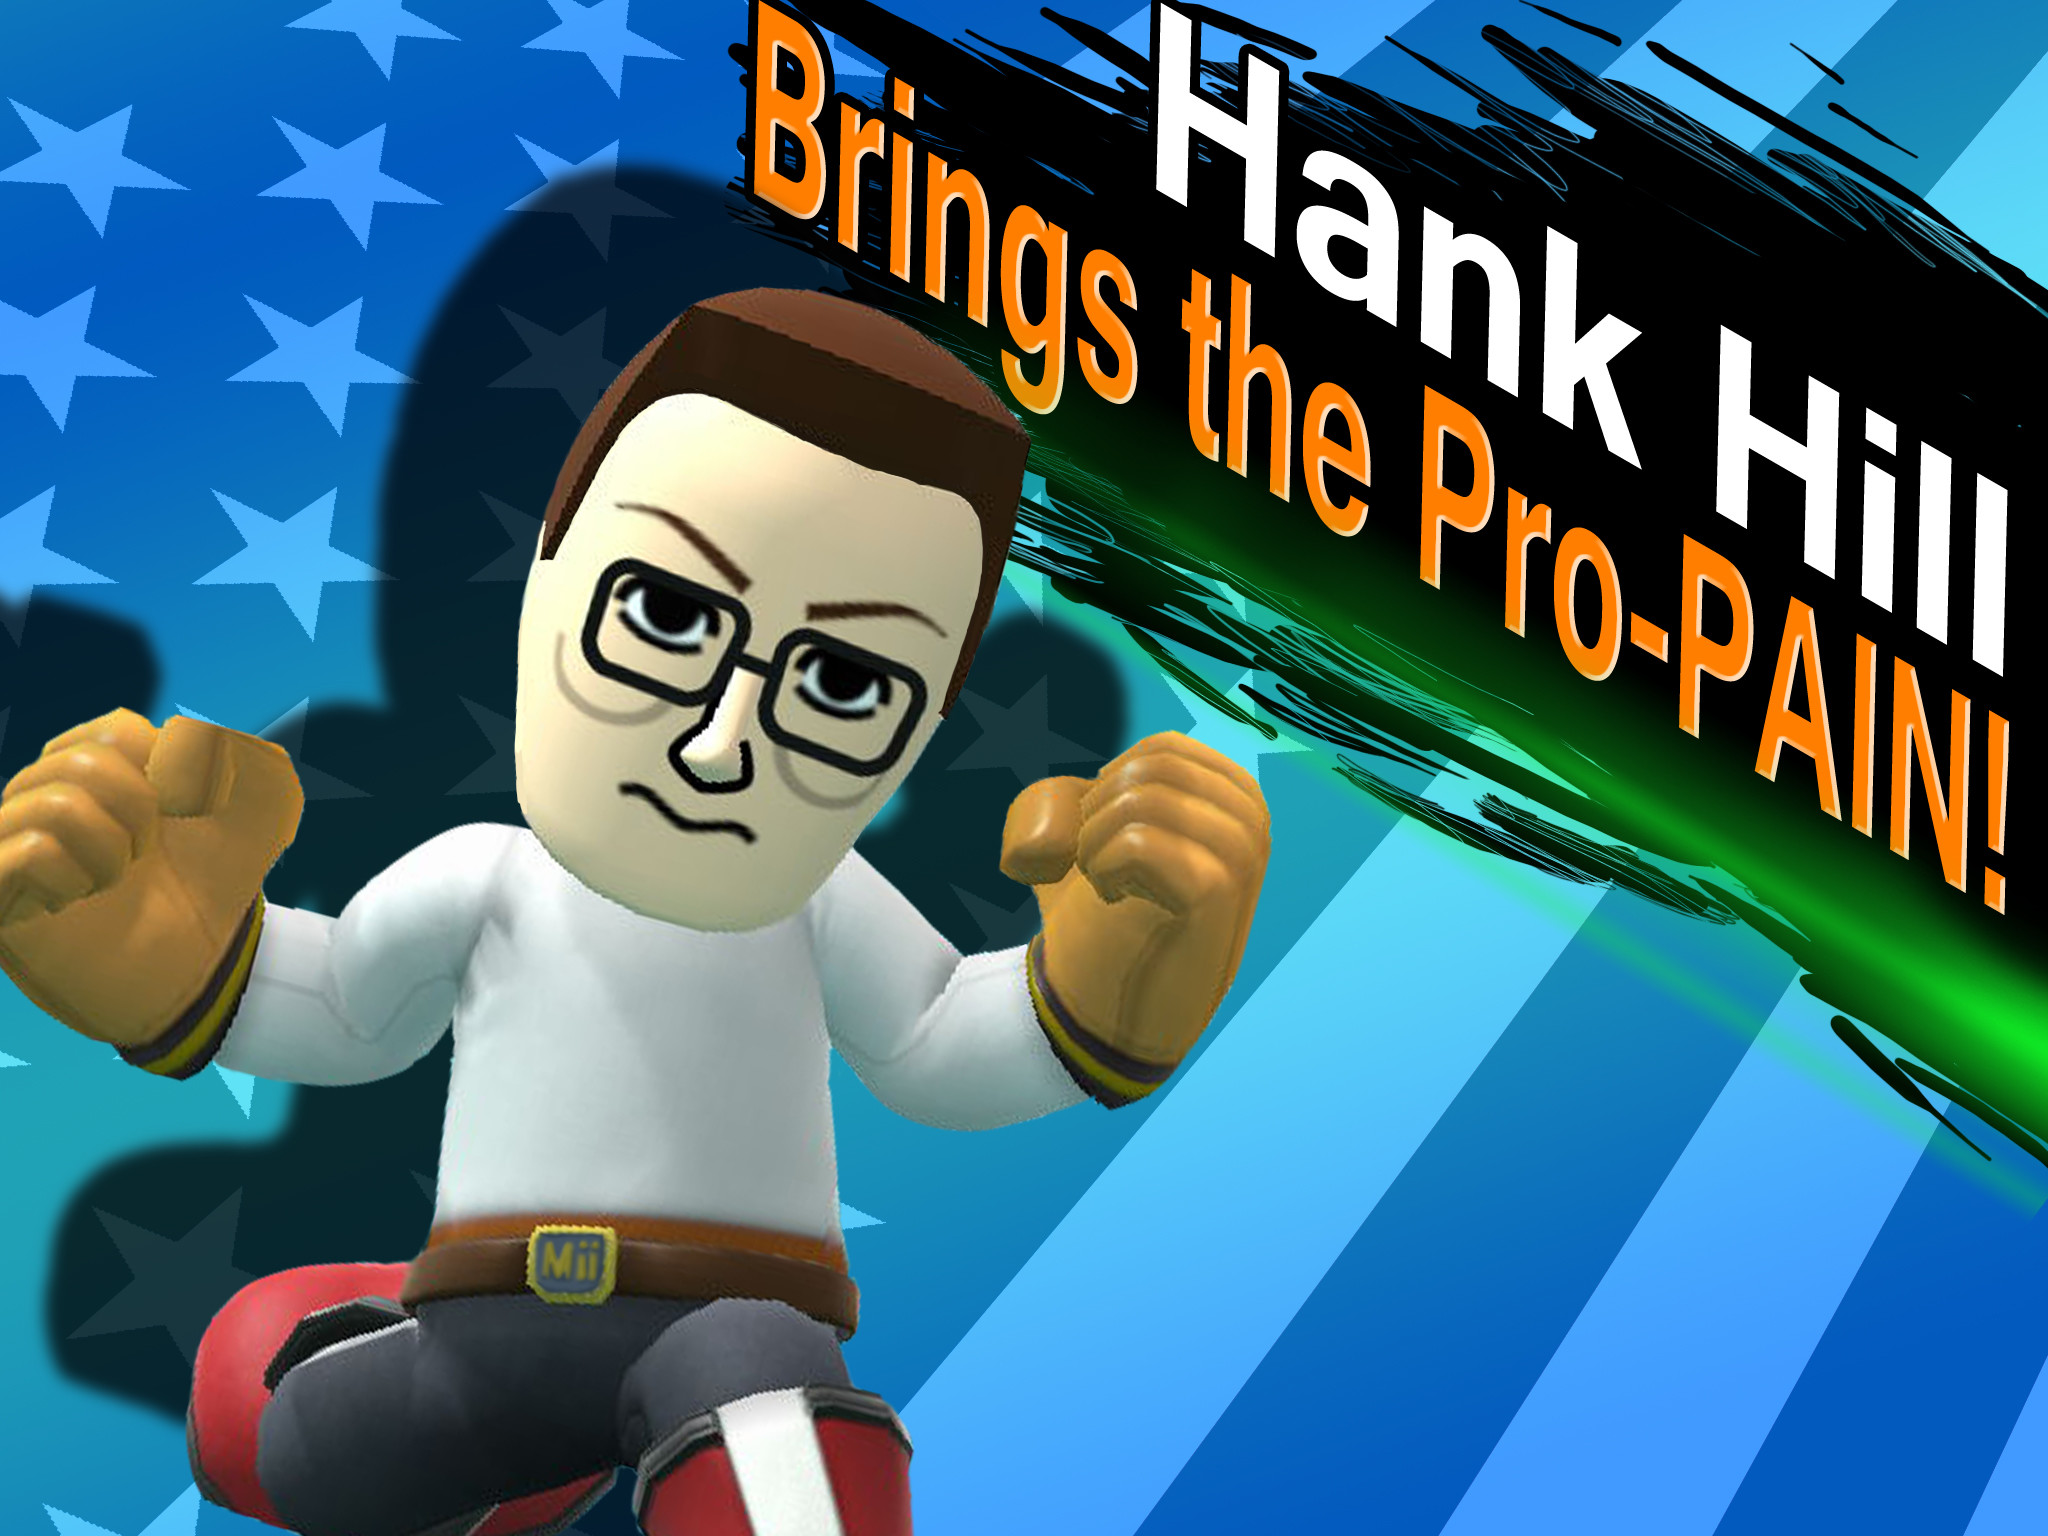 2048x1536 Hank Hill brings the Pro-PAIN! by NickGuillory on DeviantArt